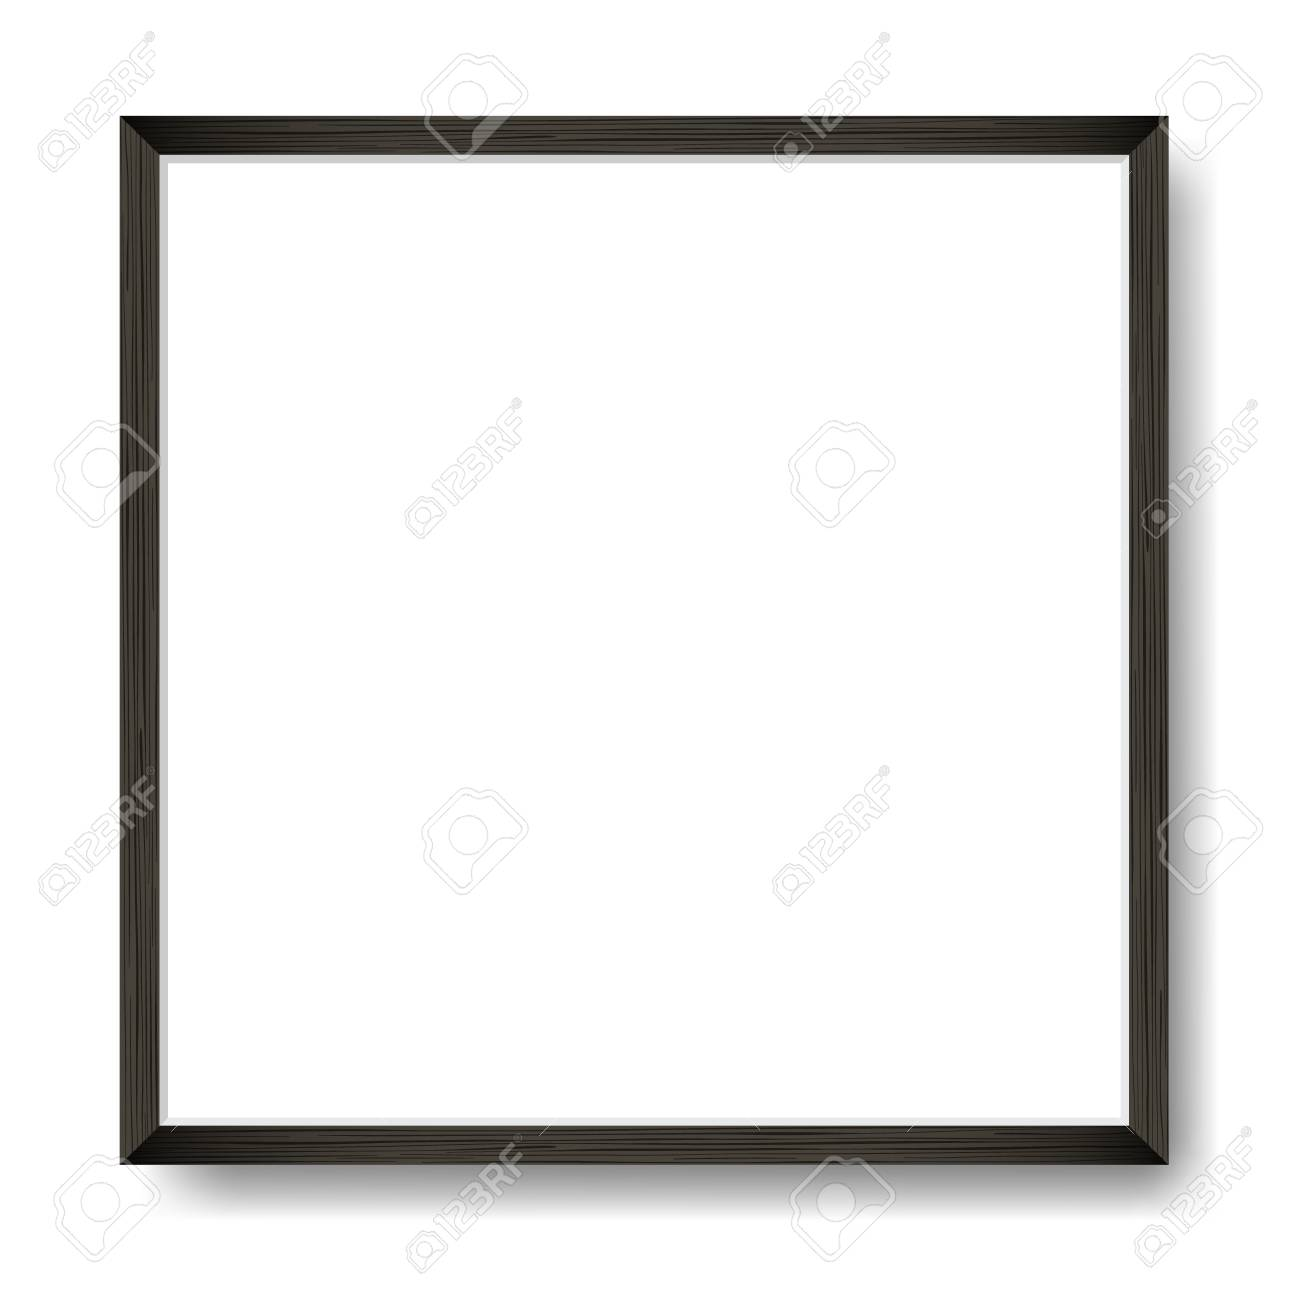 Square Blank picture frame template. Realistic black wooden frame with shadow on white wall for photo or poster. - 102210654